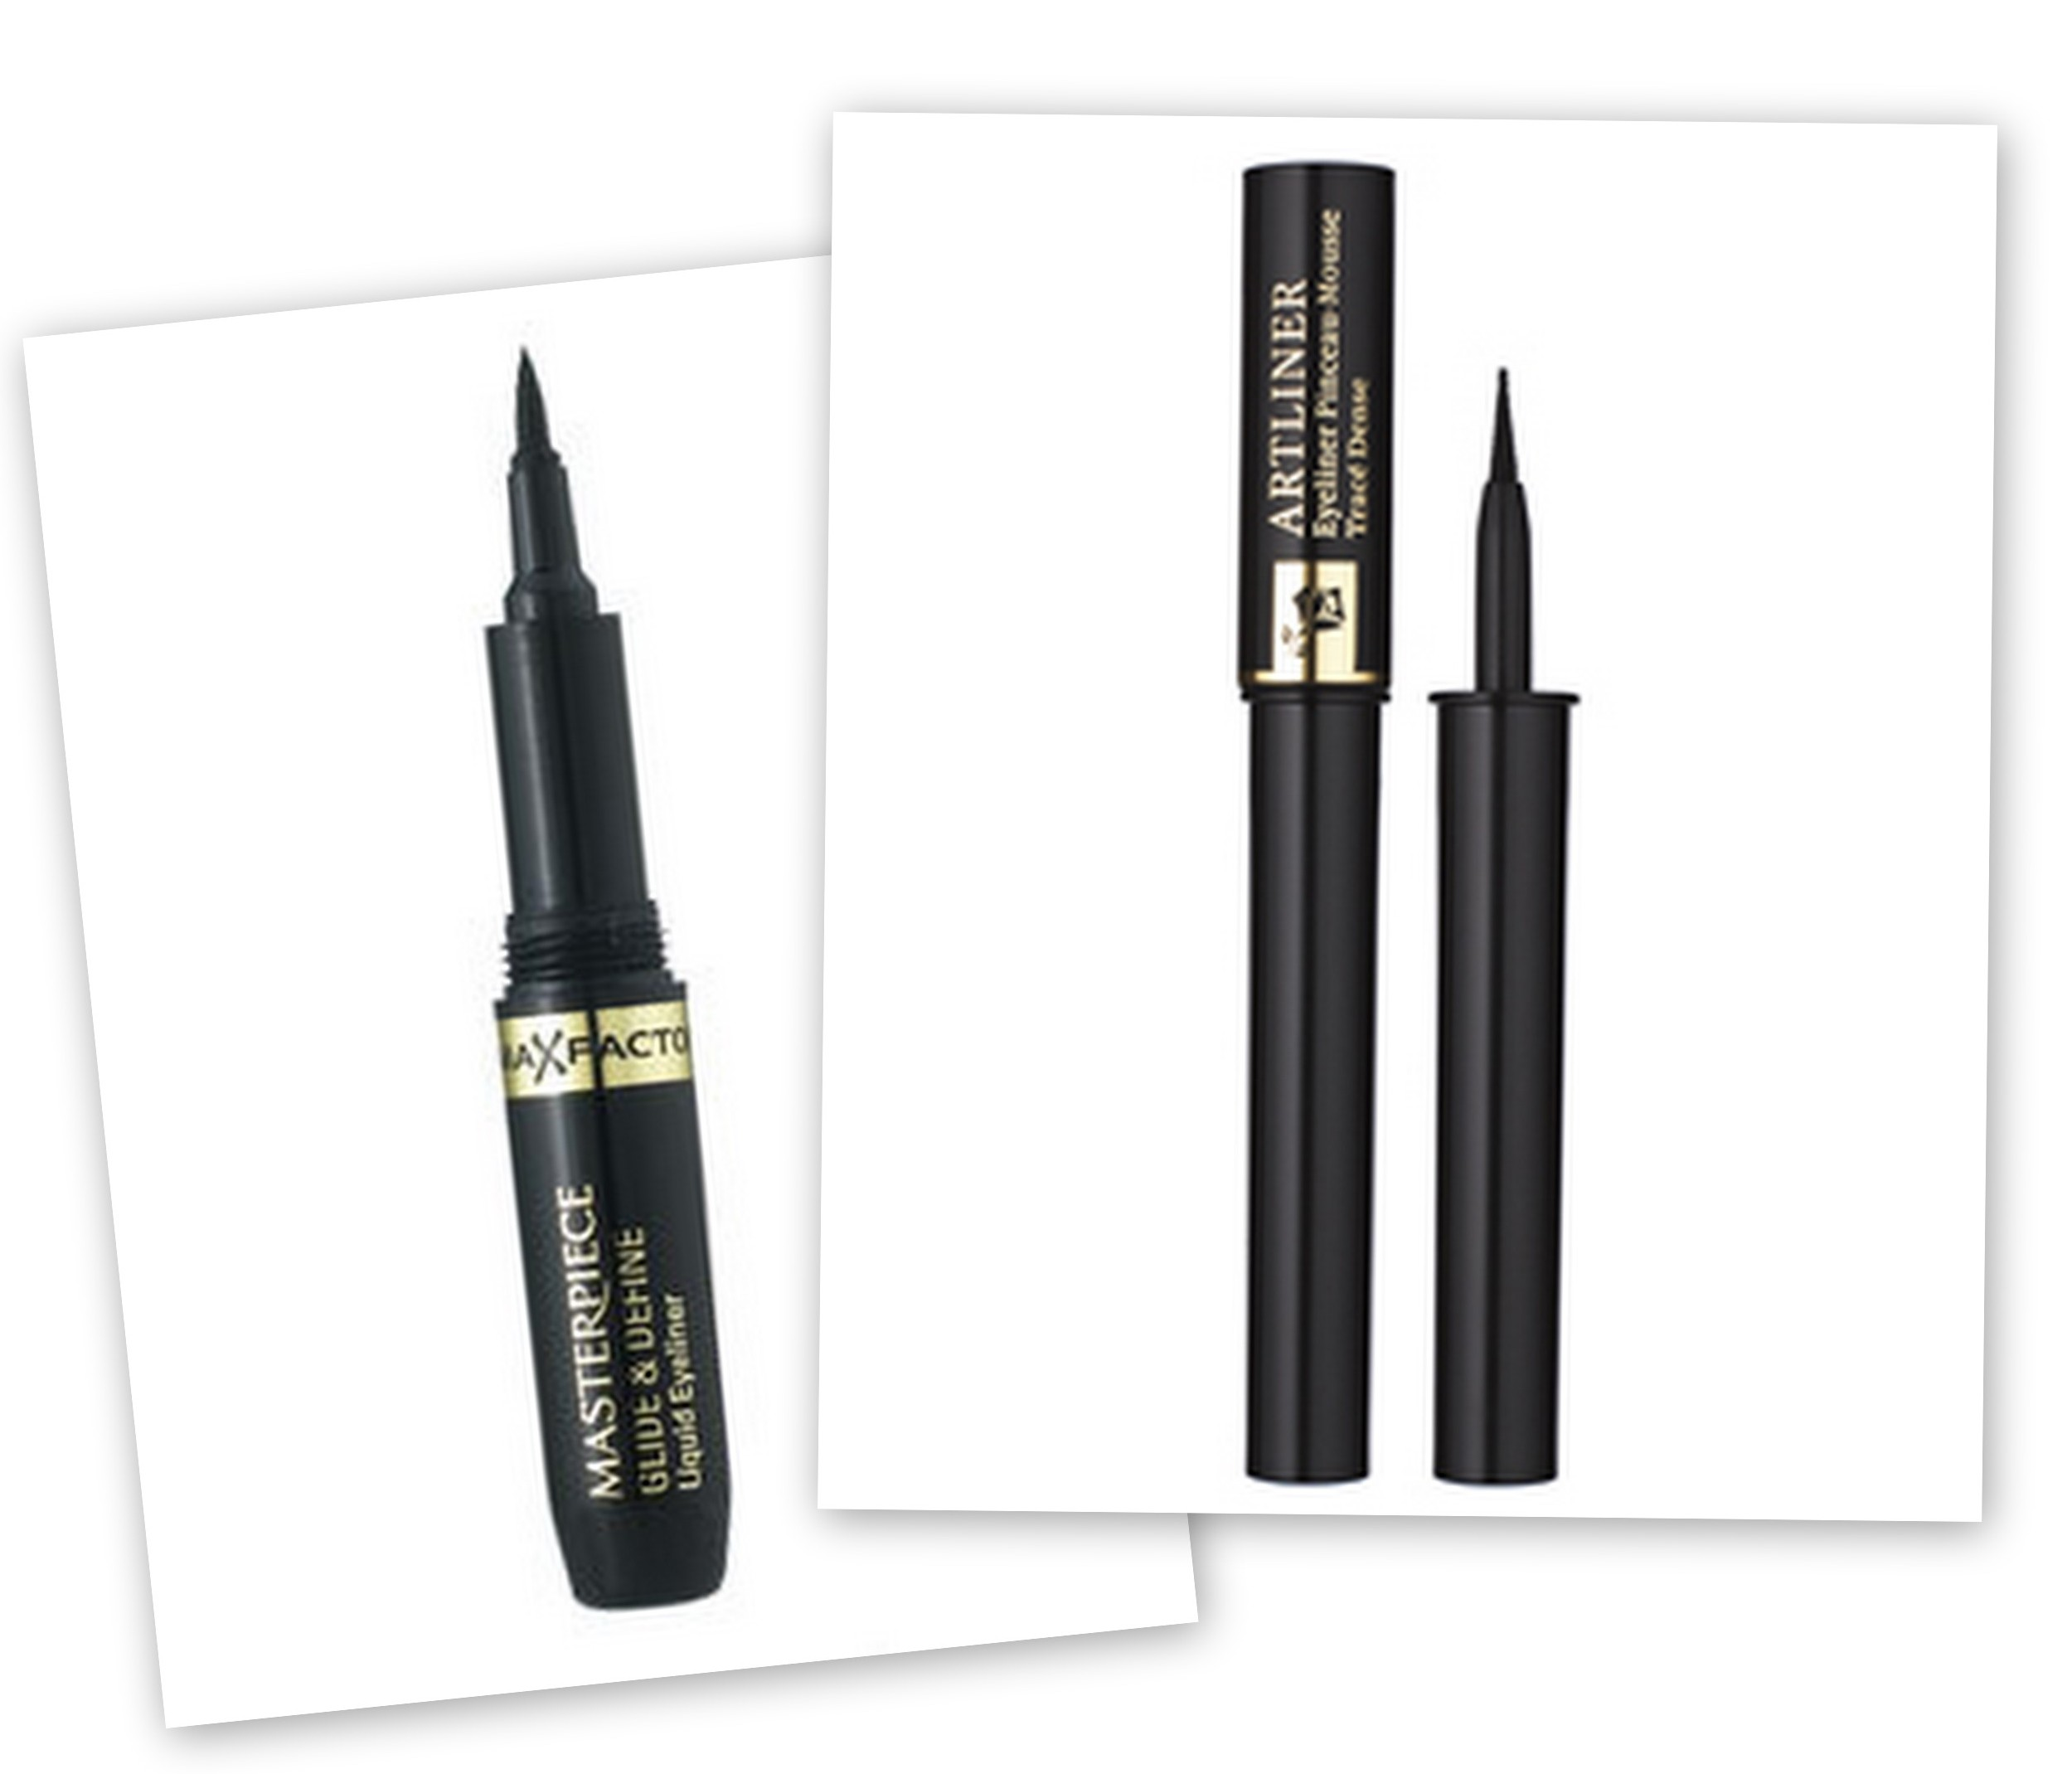 Arguably the MVP of eye makeup, black liquid eyeliner works to fill in lashes and brighten tired eyes. Here, six all-star liners guaranteed to create the perfect cat eye.